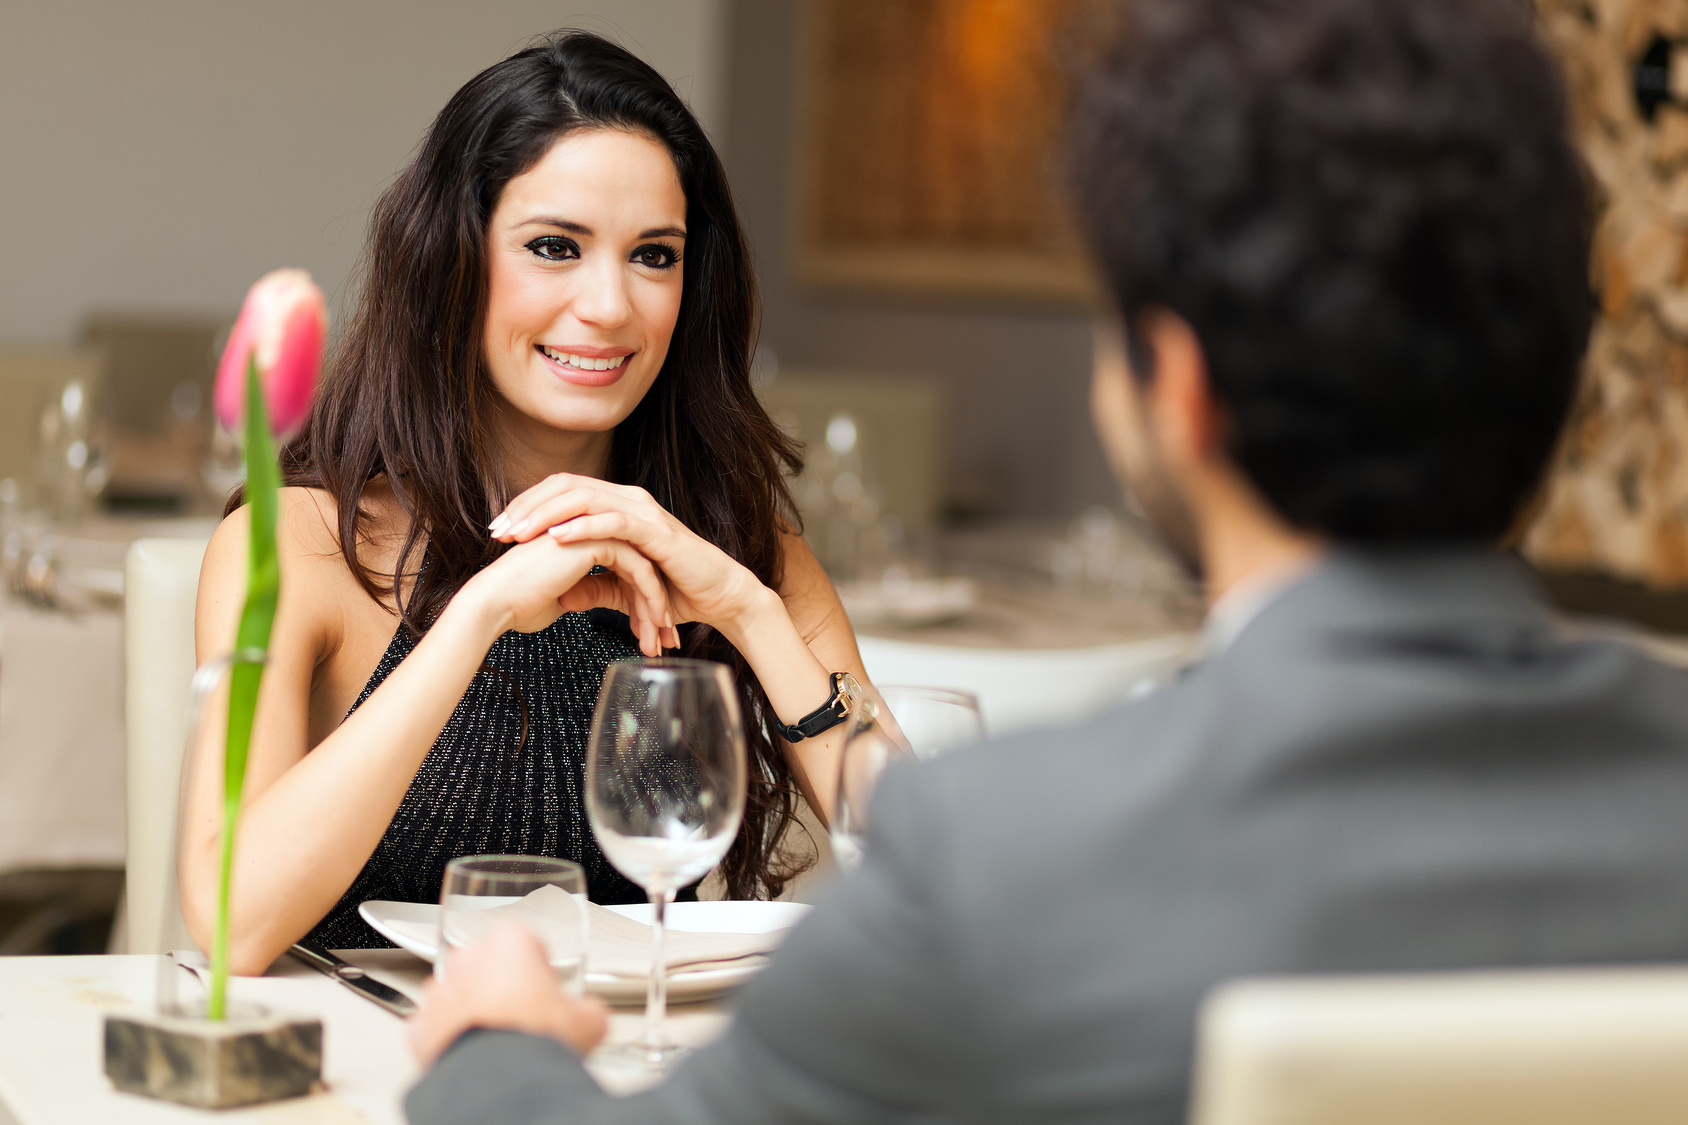 Couple Having A Date In A Luxury Restaurant Hola Mujer